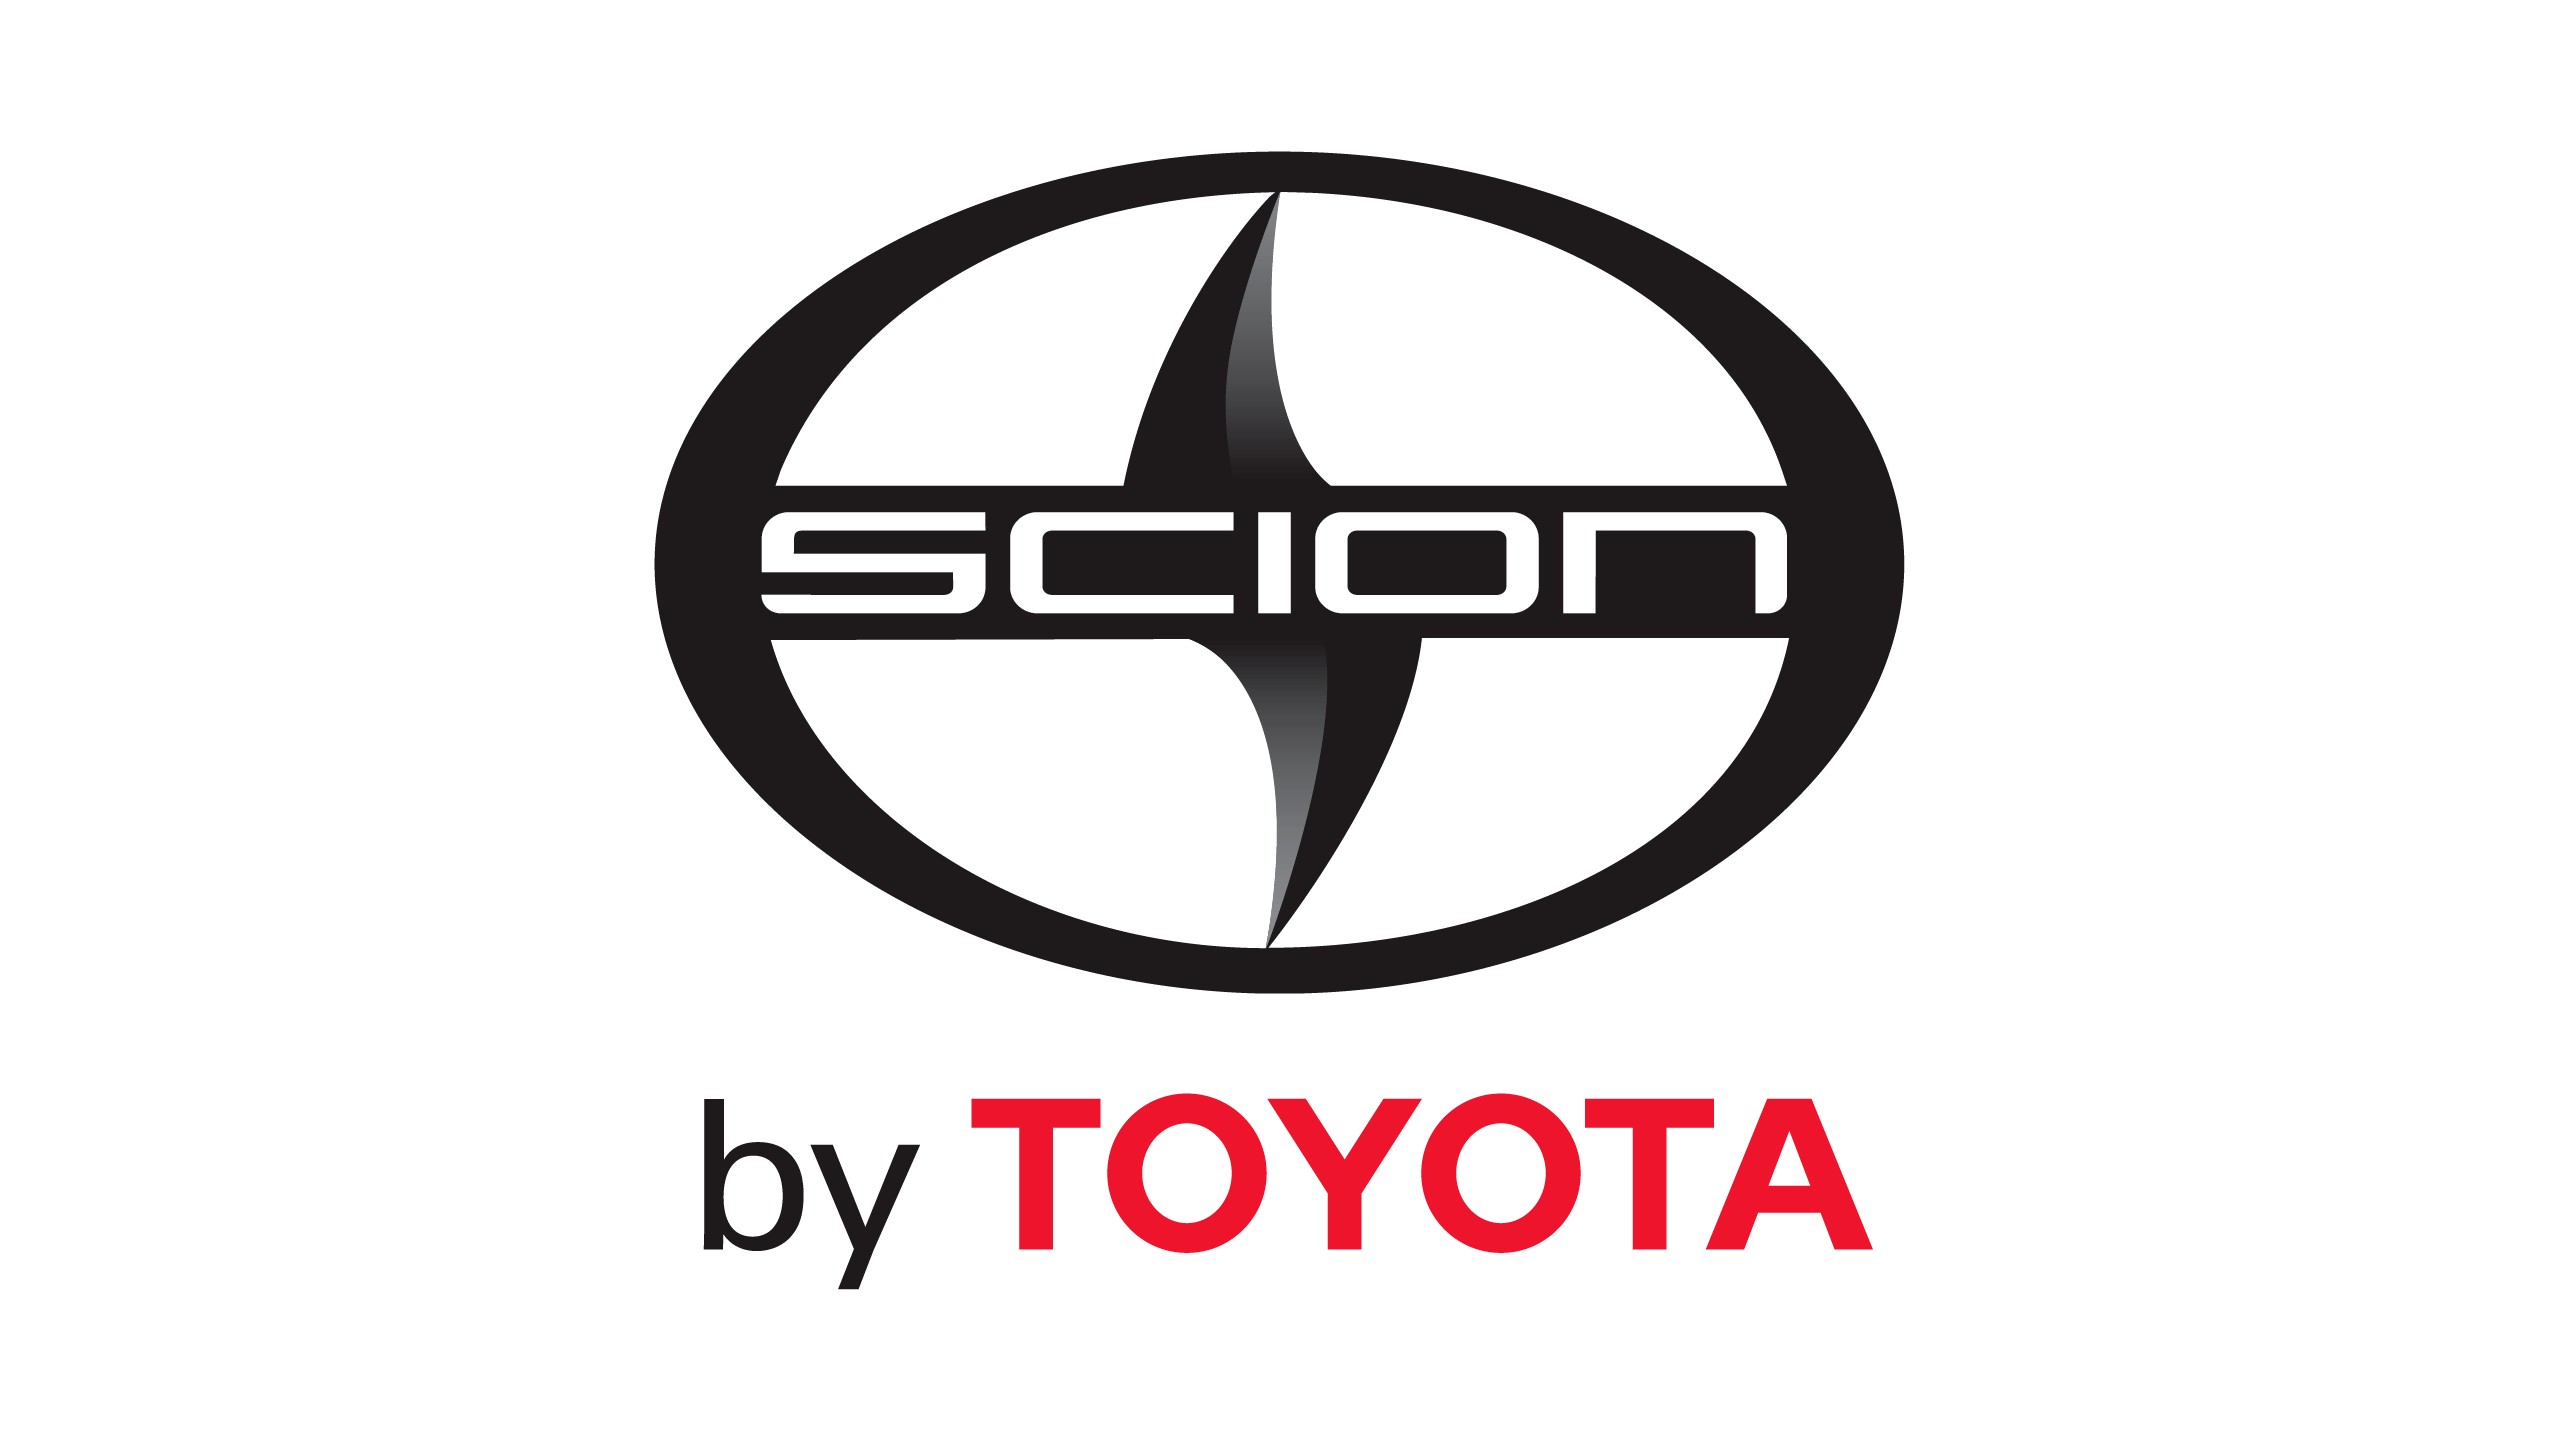 Scion Logo Hd Meaning Information